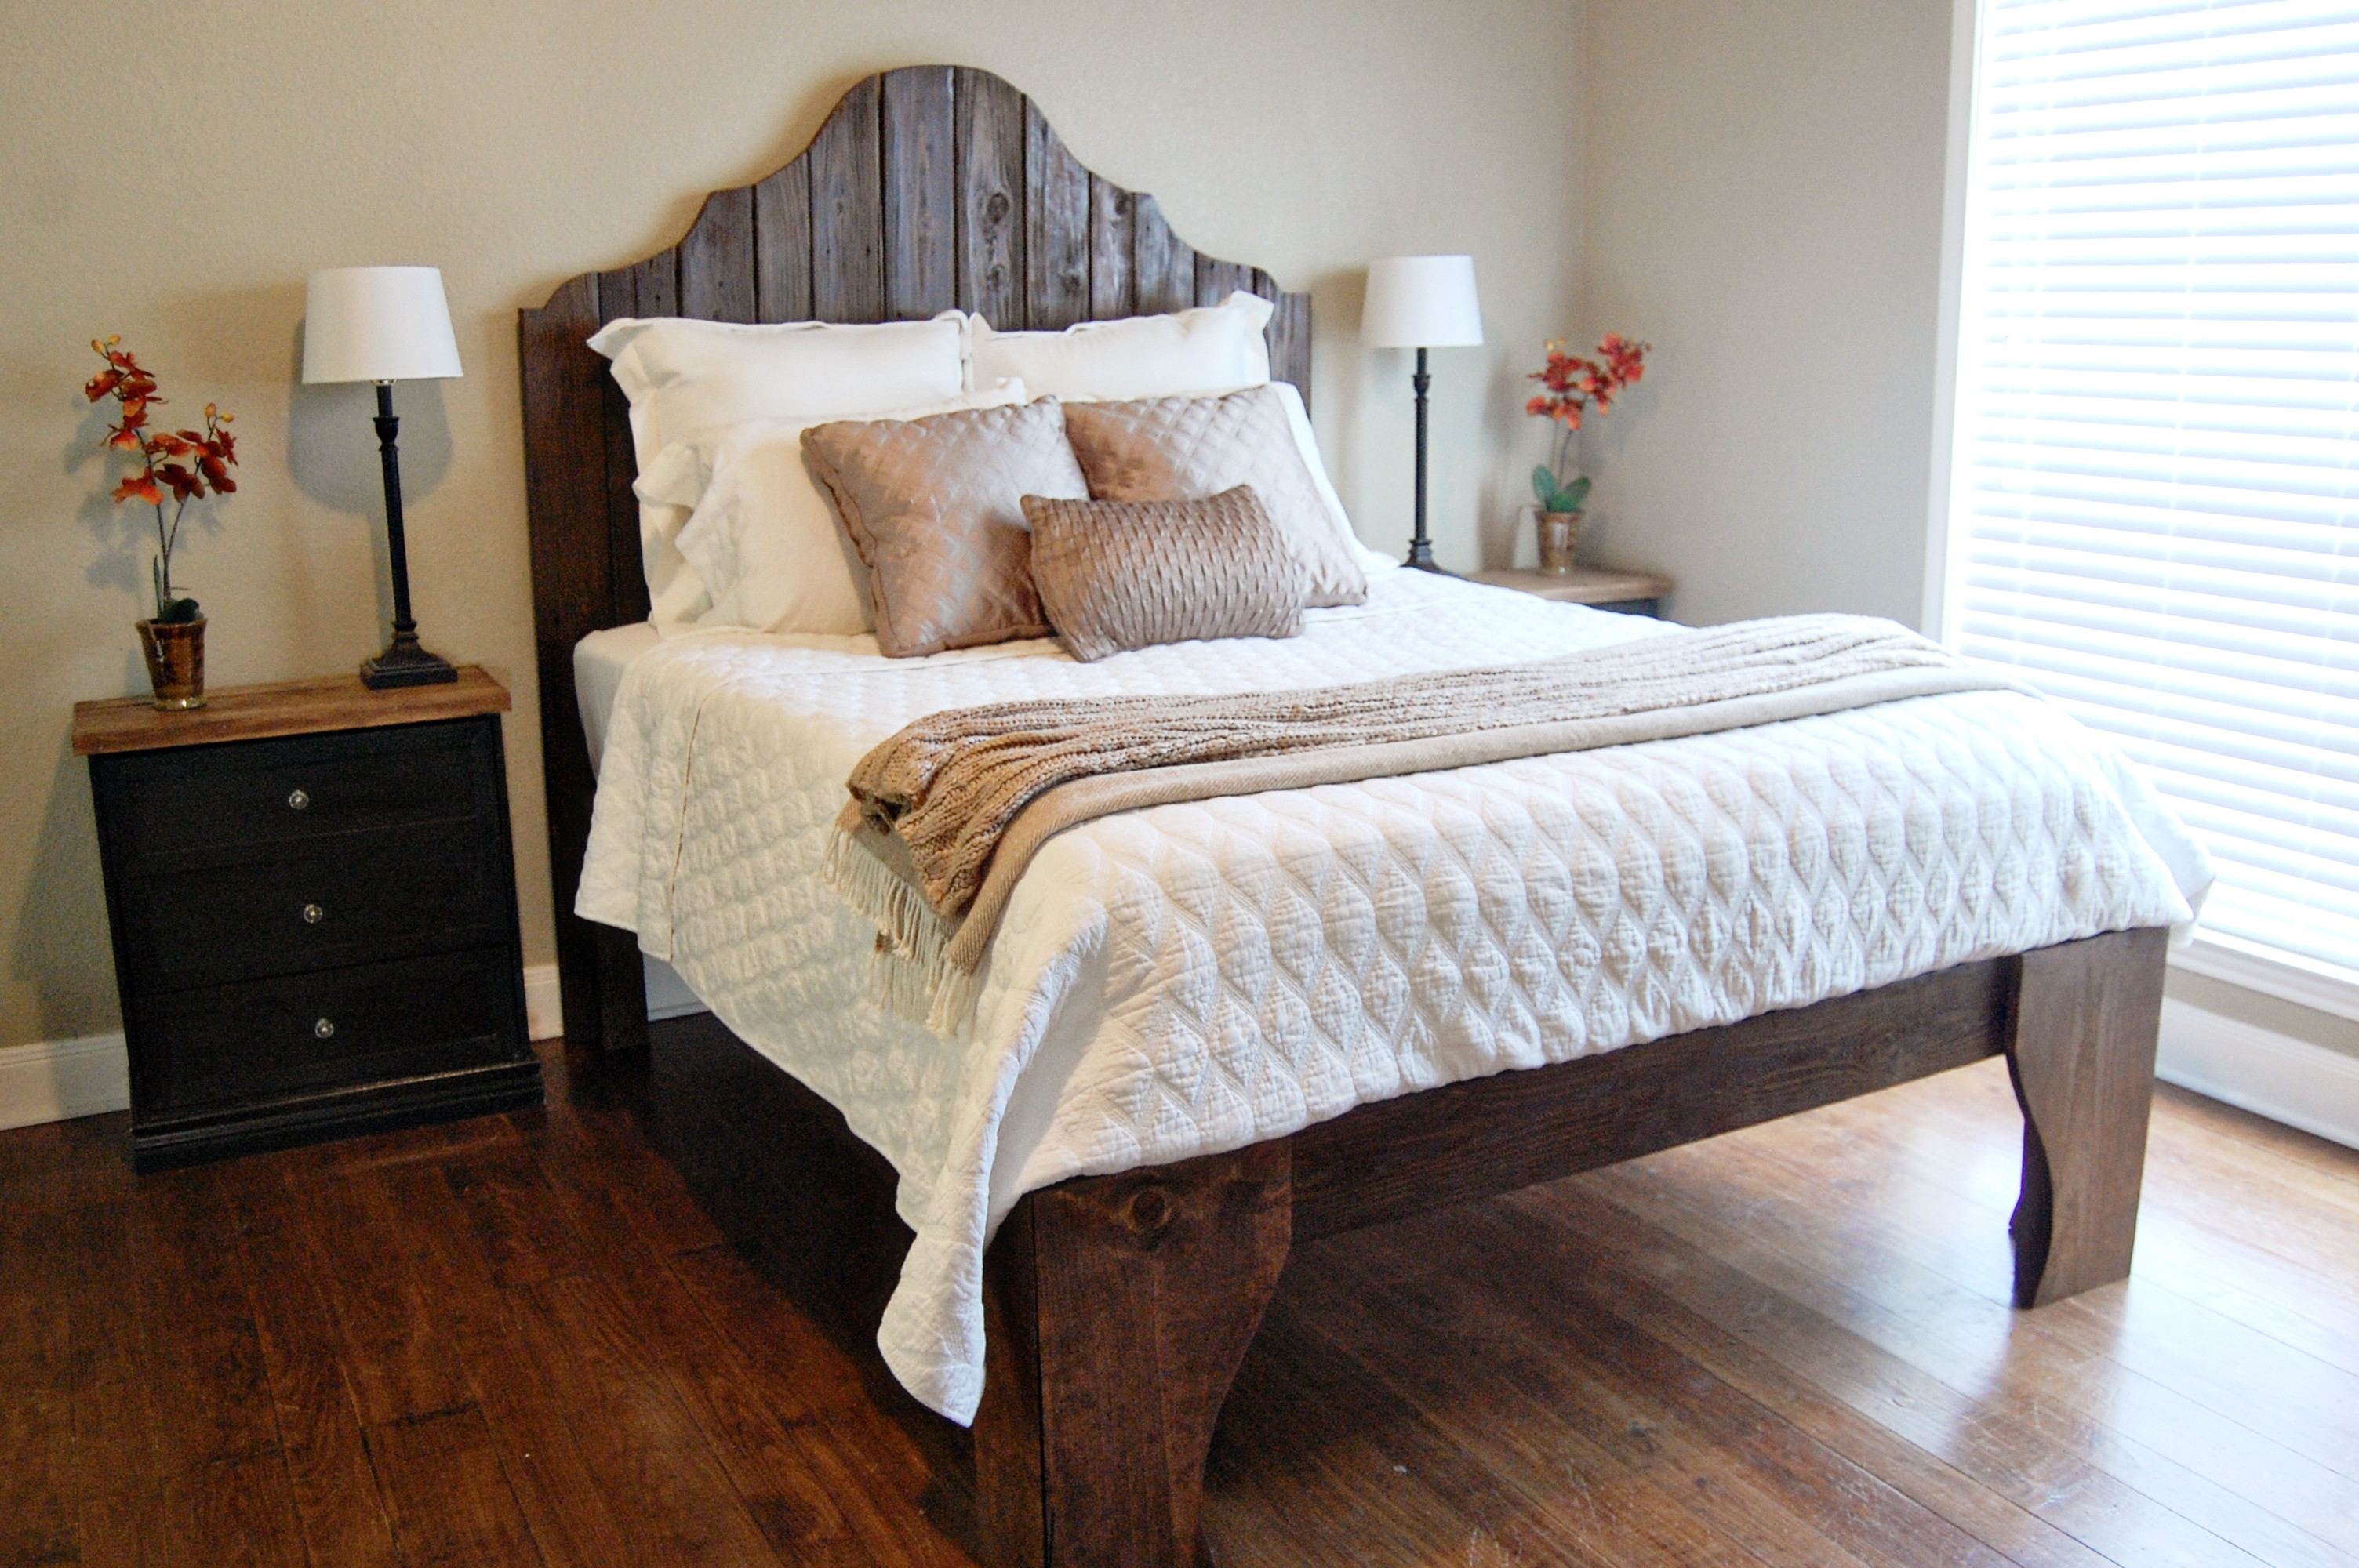 Best ideas about DIY Wood Beds . Save or Pin 21 DIY Bed Frames To Give Yourself The Restful Spot of Now.